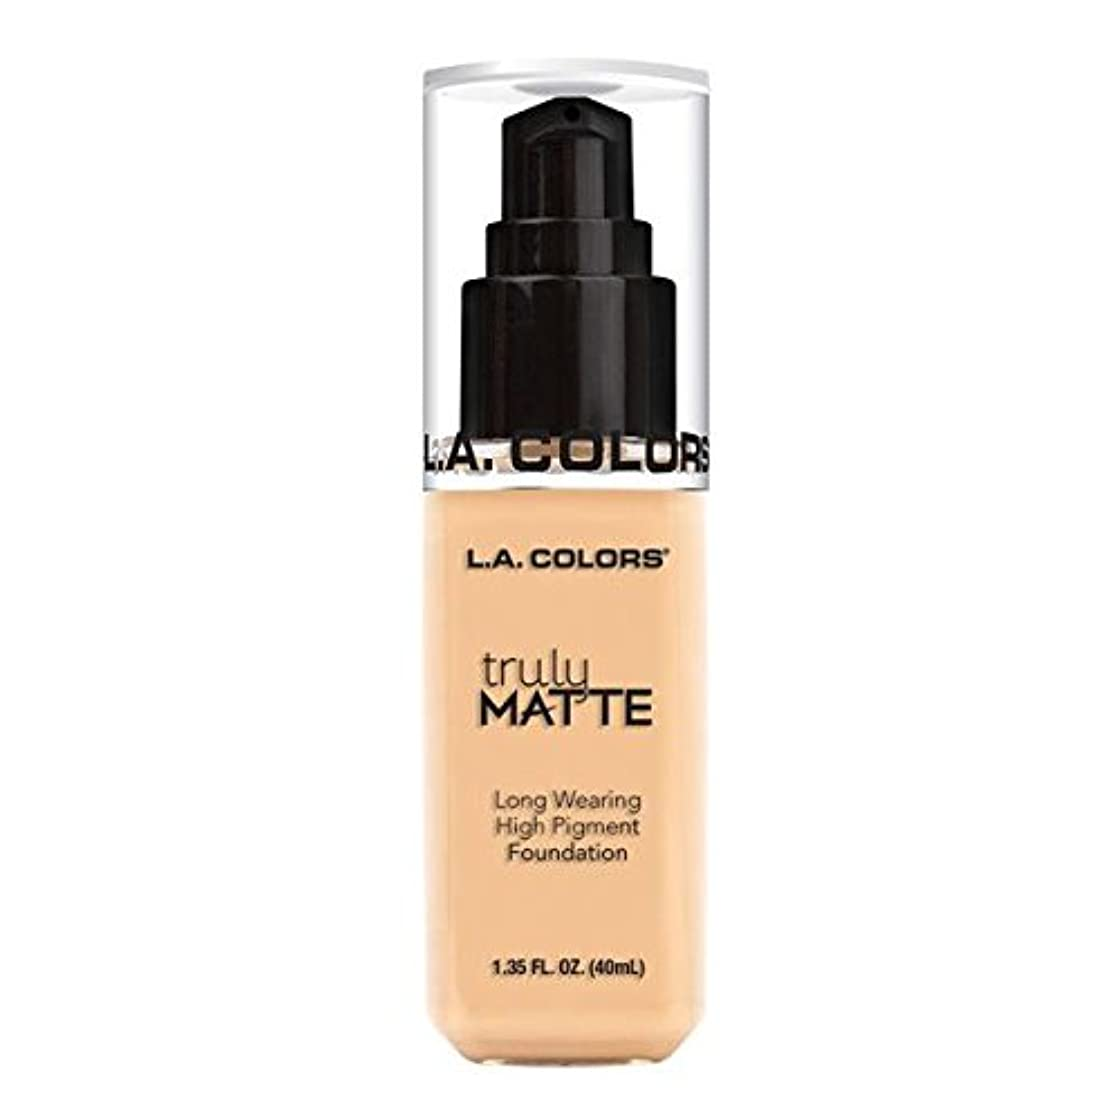 ローラー感染する噛む(6 Pack) L.A. COLORS Truly Matte Foundation - Porcelain (並行輸入品)